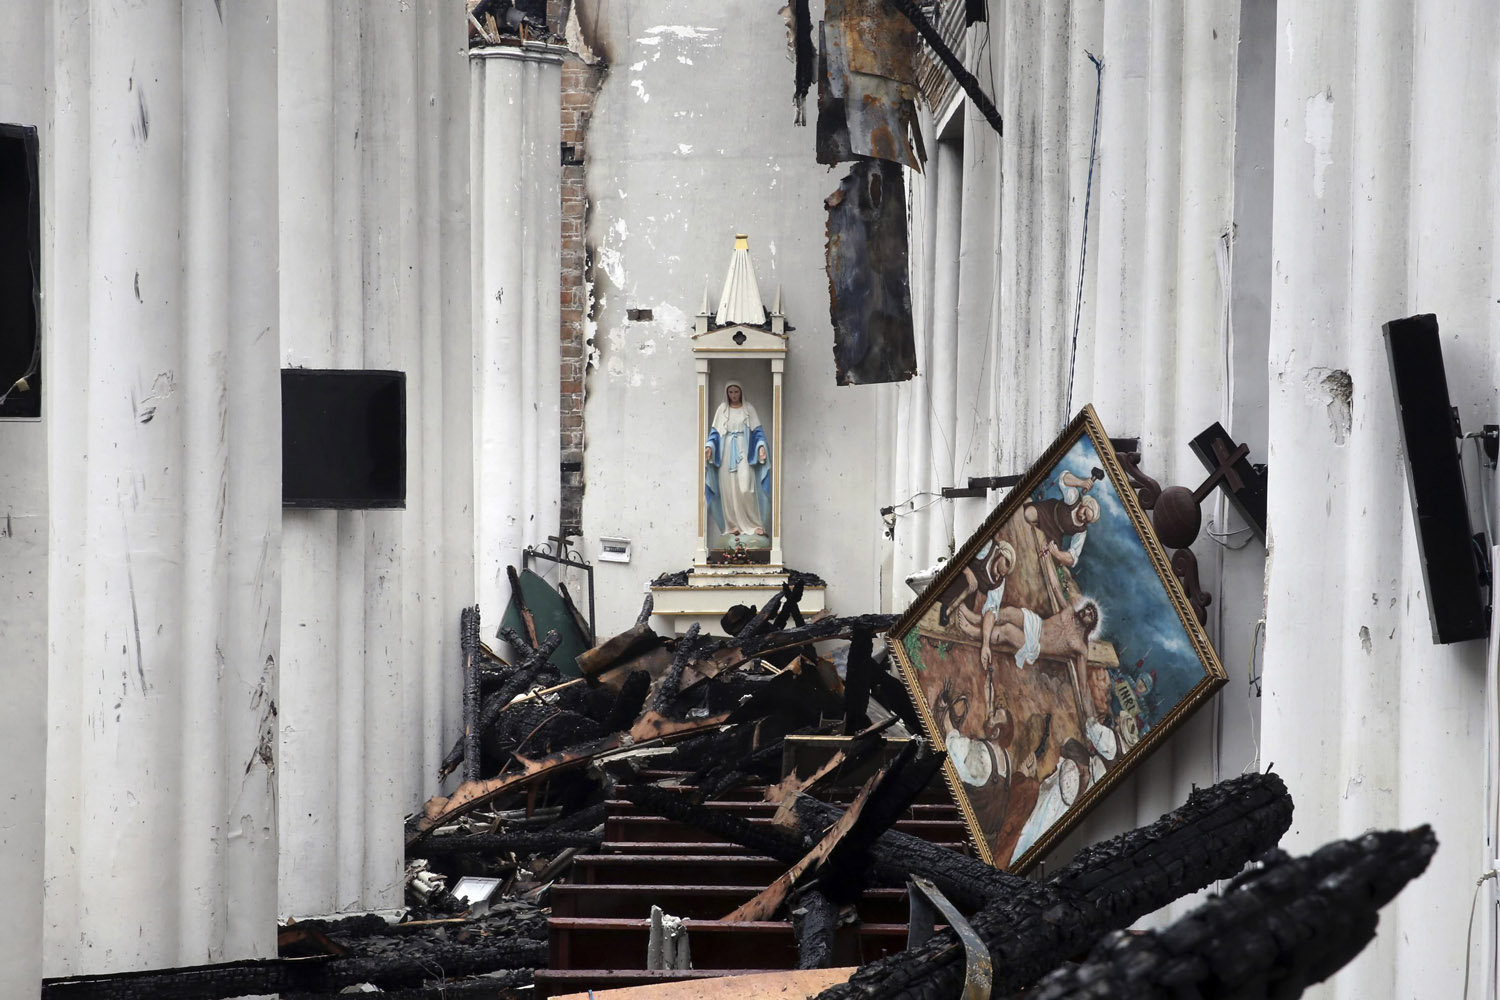 Jul. 28, 2014. A sculpture (C) and a painting are seen above debris after a fire at the Jiangbei Cathedral in Ningbo, Zhejiang province.